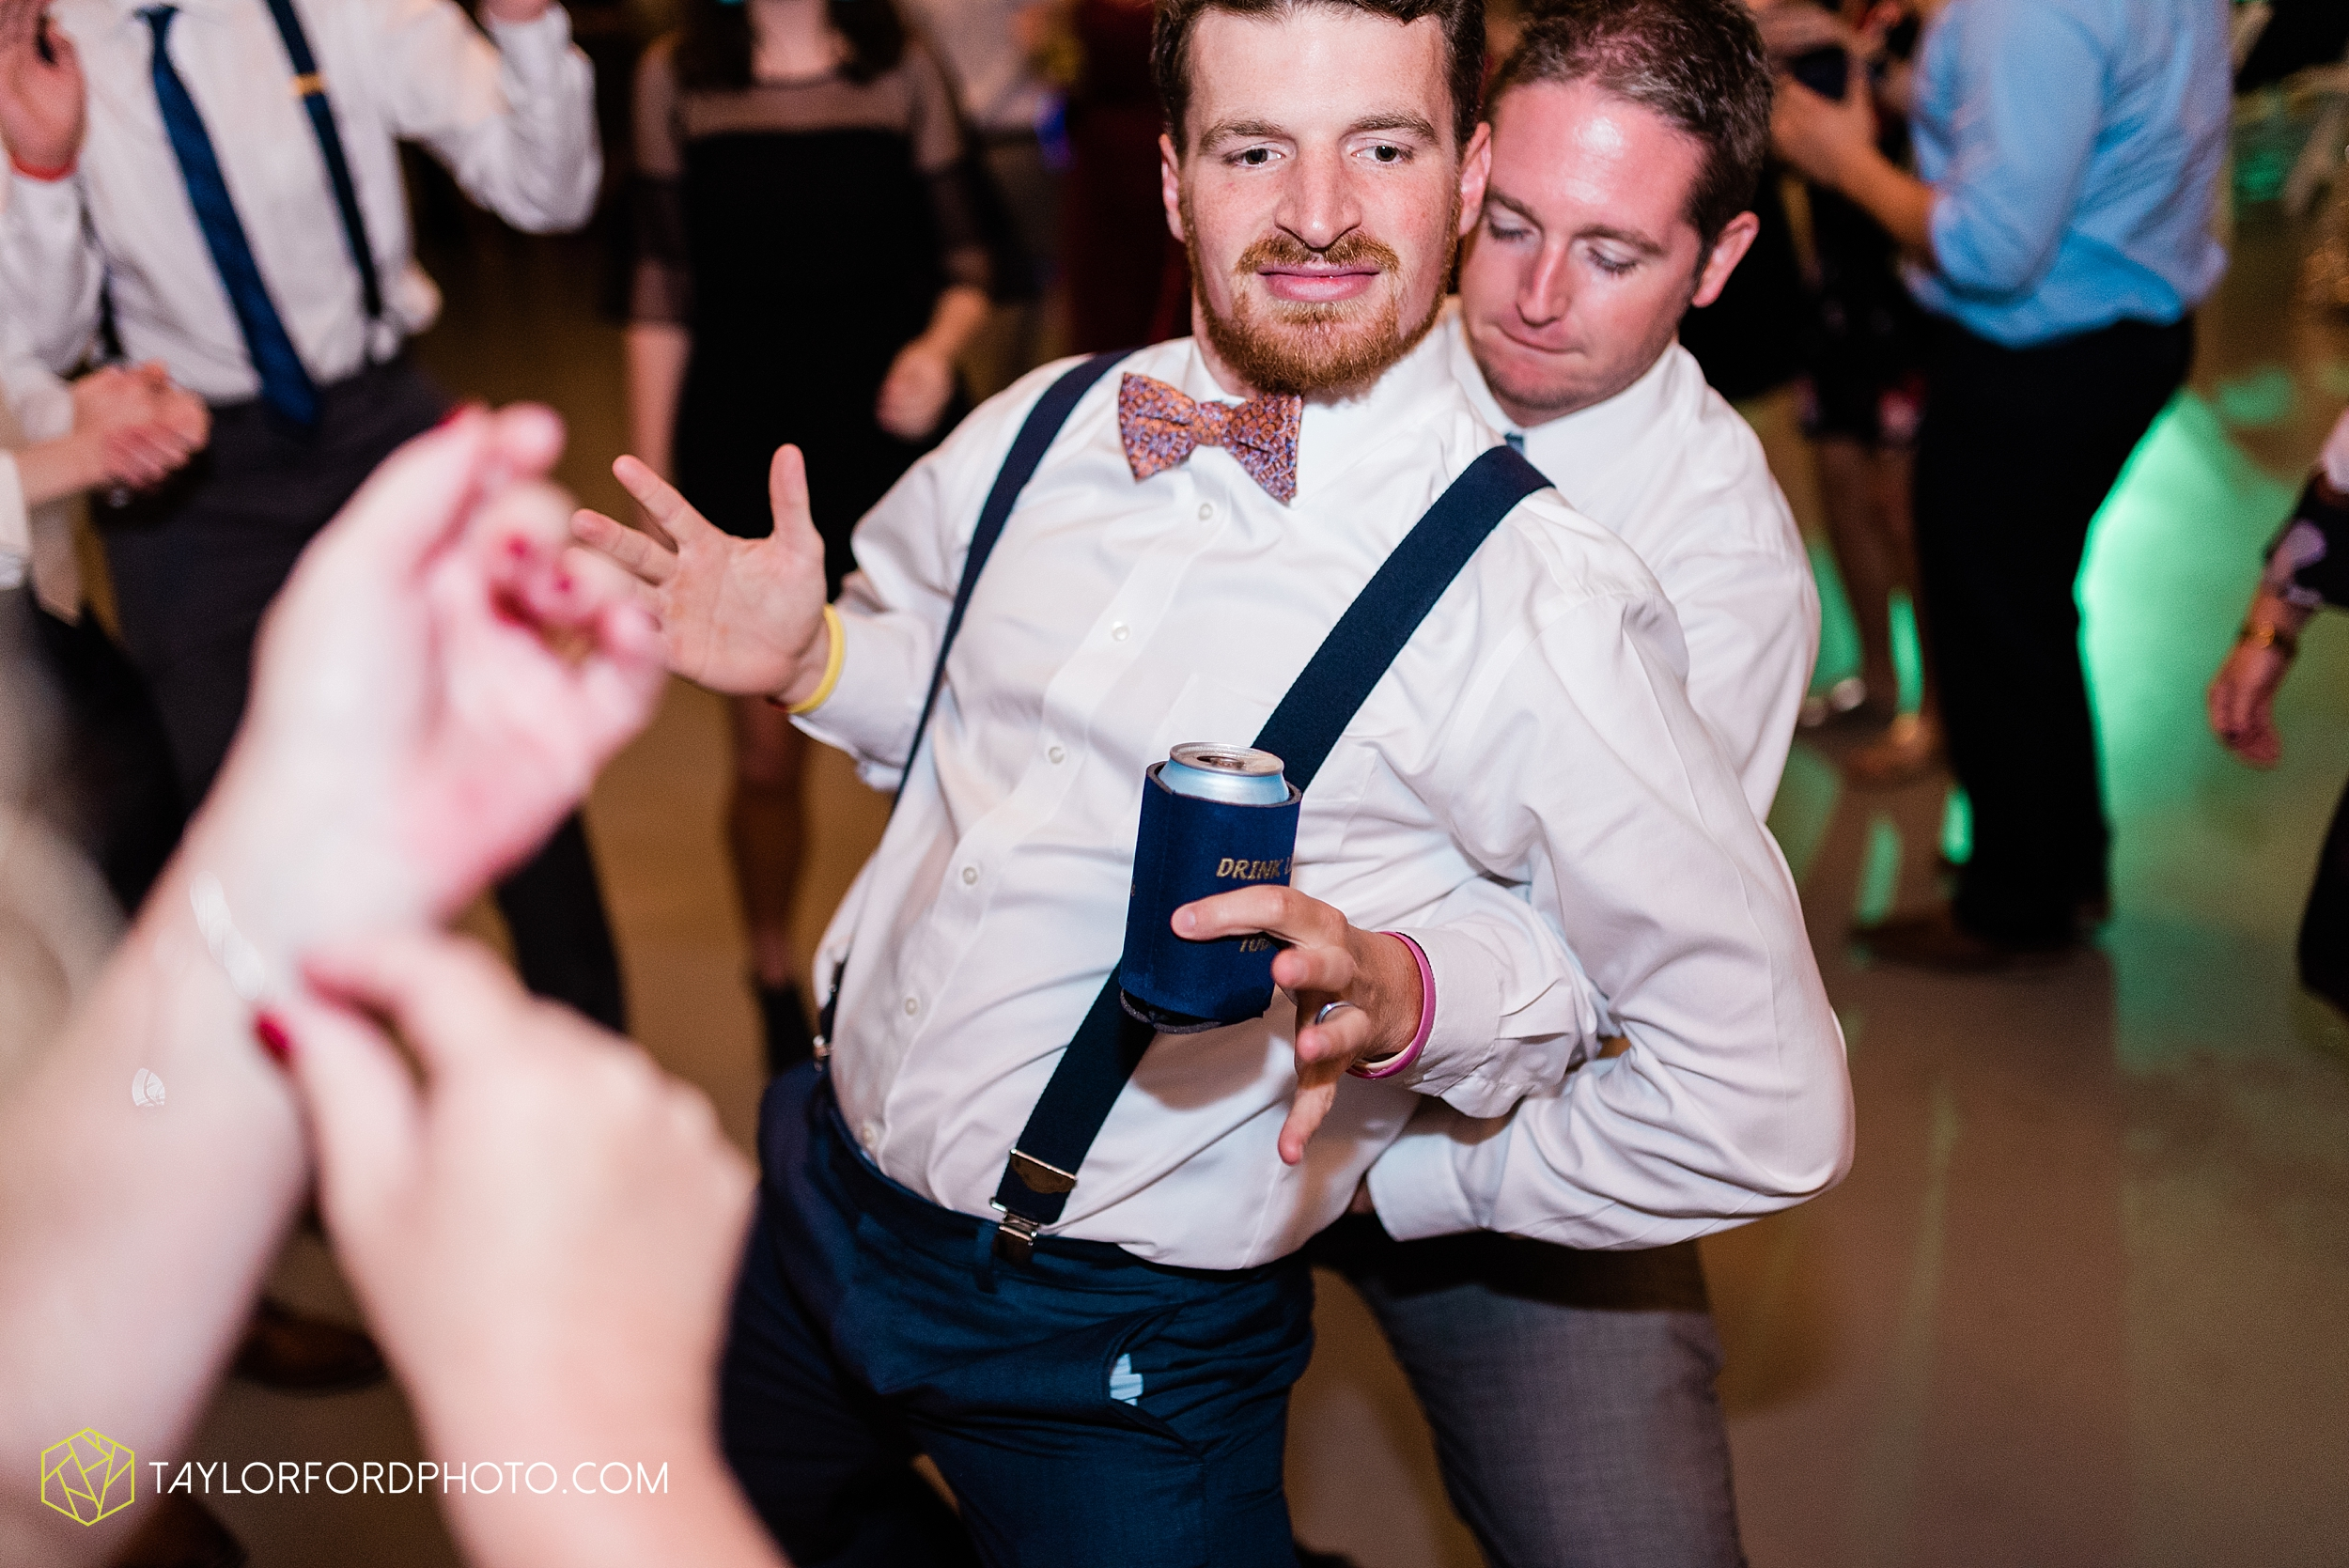 gayle-rayman-mike-steele-ottoville-ohio-wedding-immaculate-conception-parish-center-wedding-sycamore-lake-winery-wannamachers-photographer-taylor-ford-photography_0442.jpg